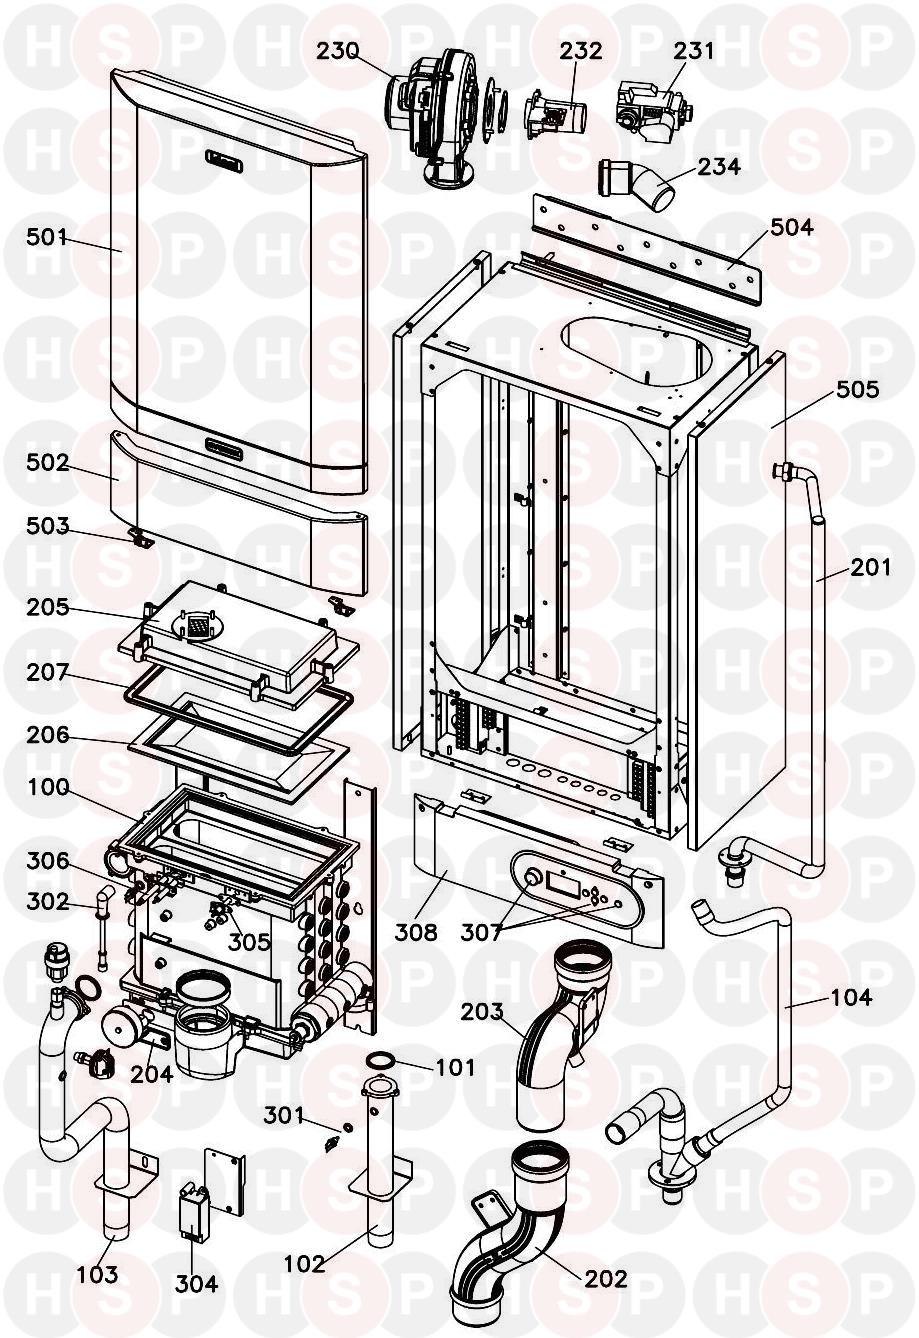 Ideal INSTINCT HEAT 60 (BOILER EXPLODED VIEW) Diagram